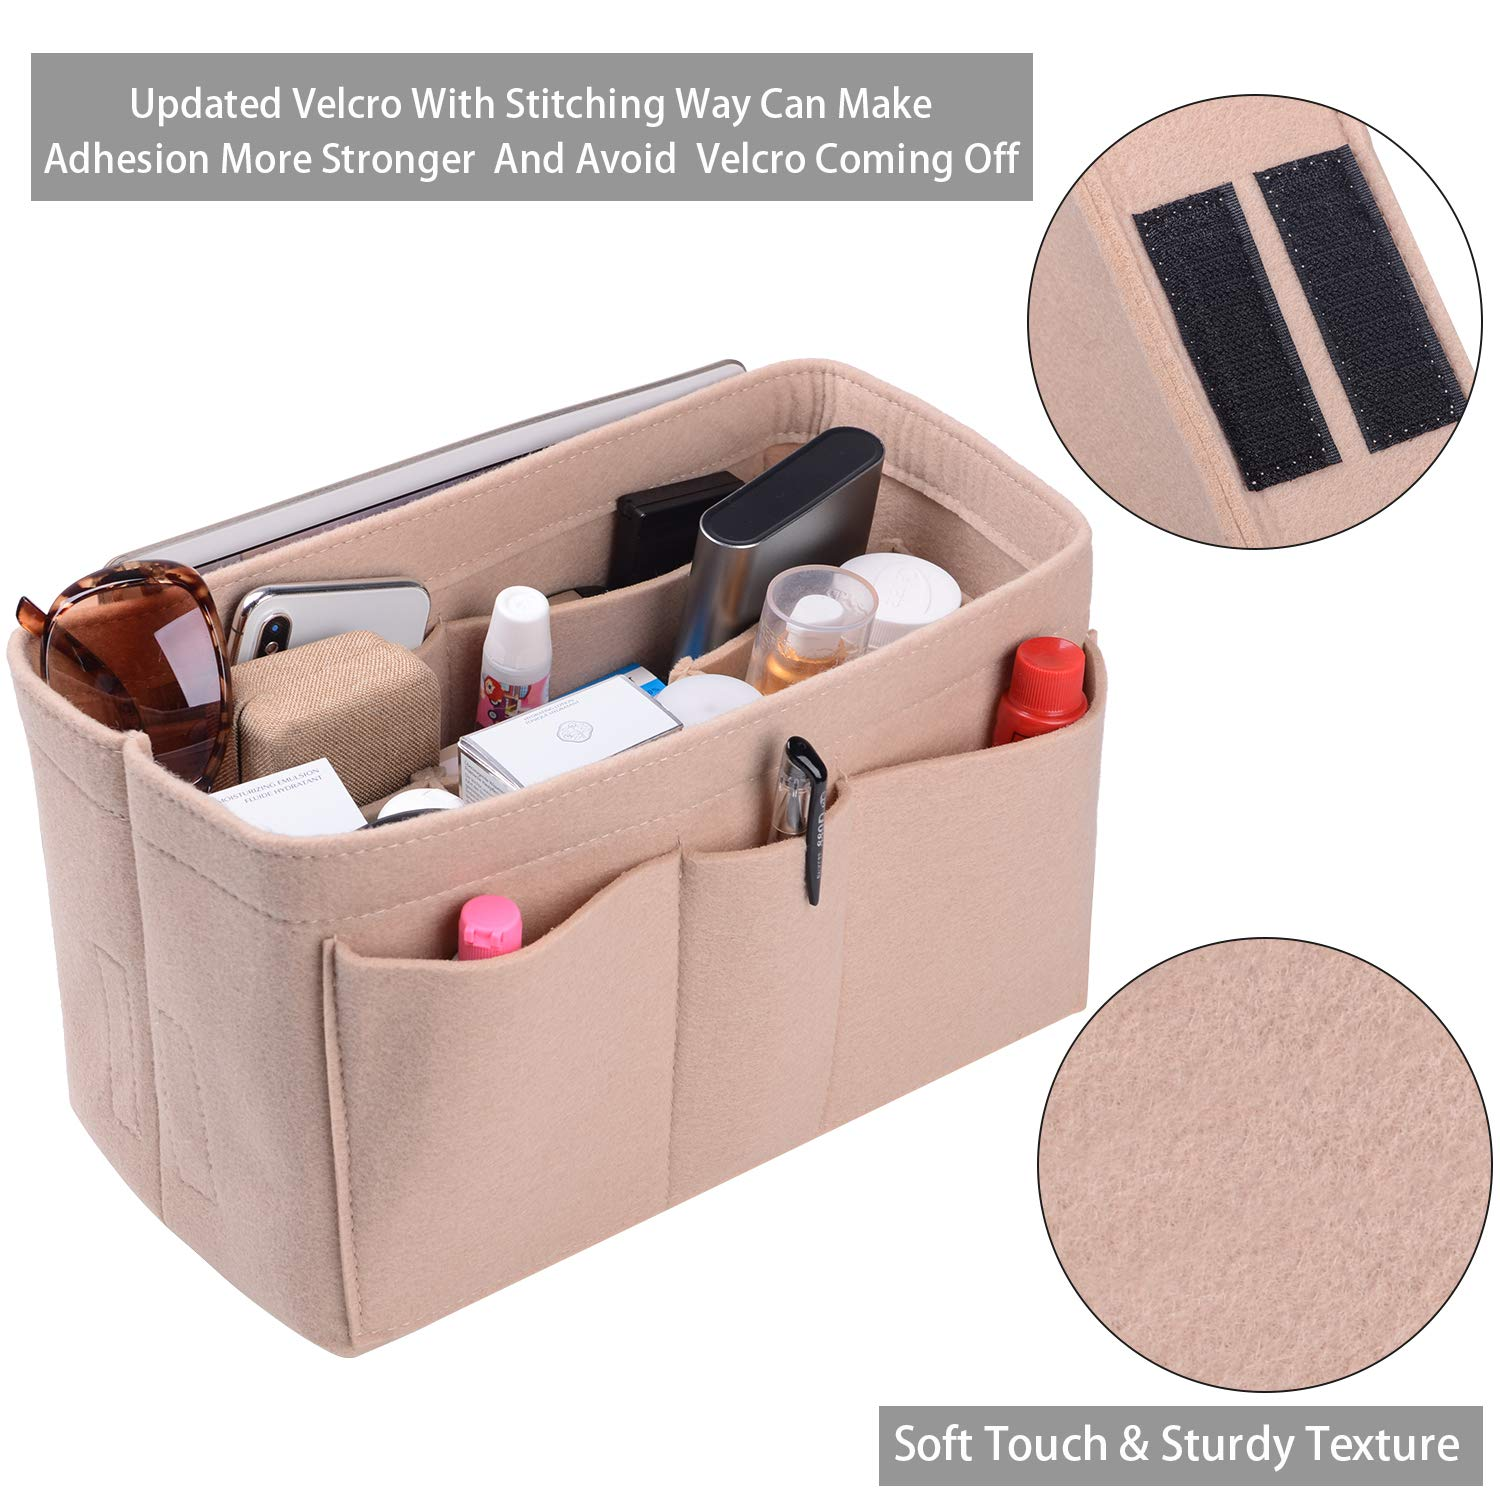 Felt(3MM) Fabric Purse Organizer Insert for Purse Handbag Tote Bag, 3 Sizes, 8 Colors